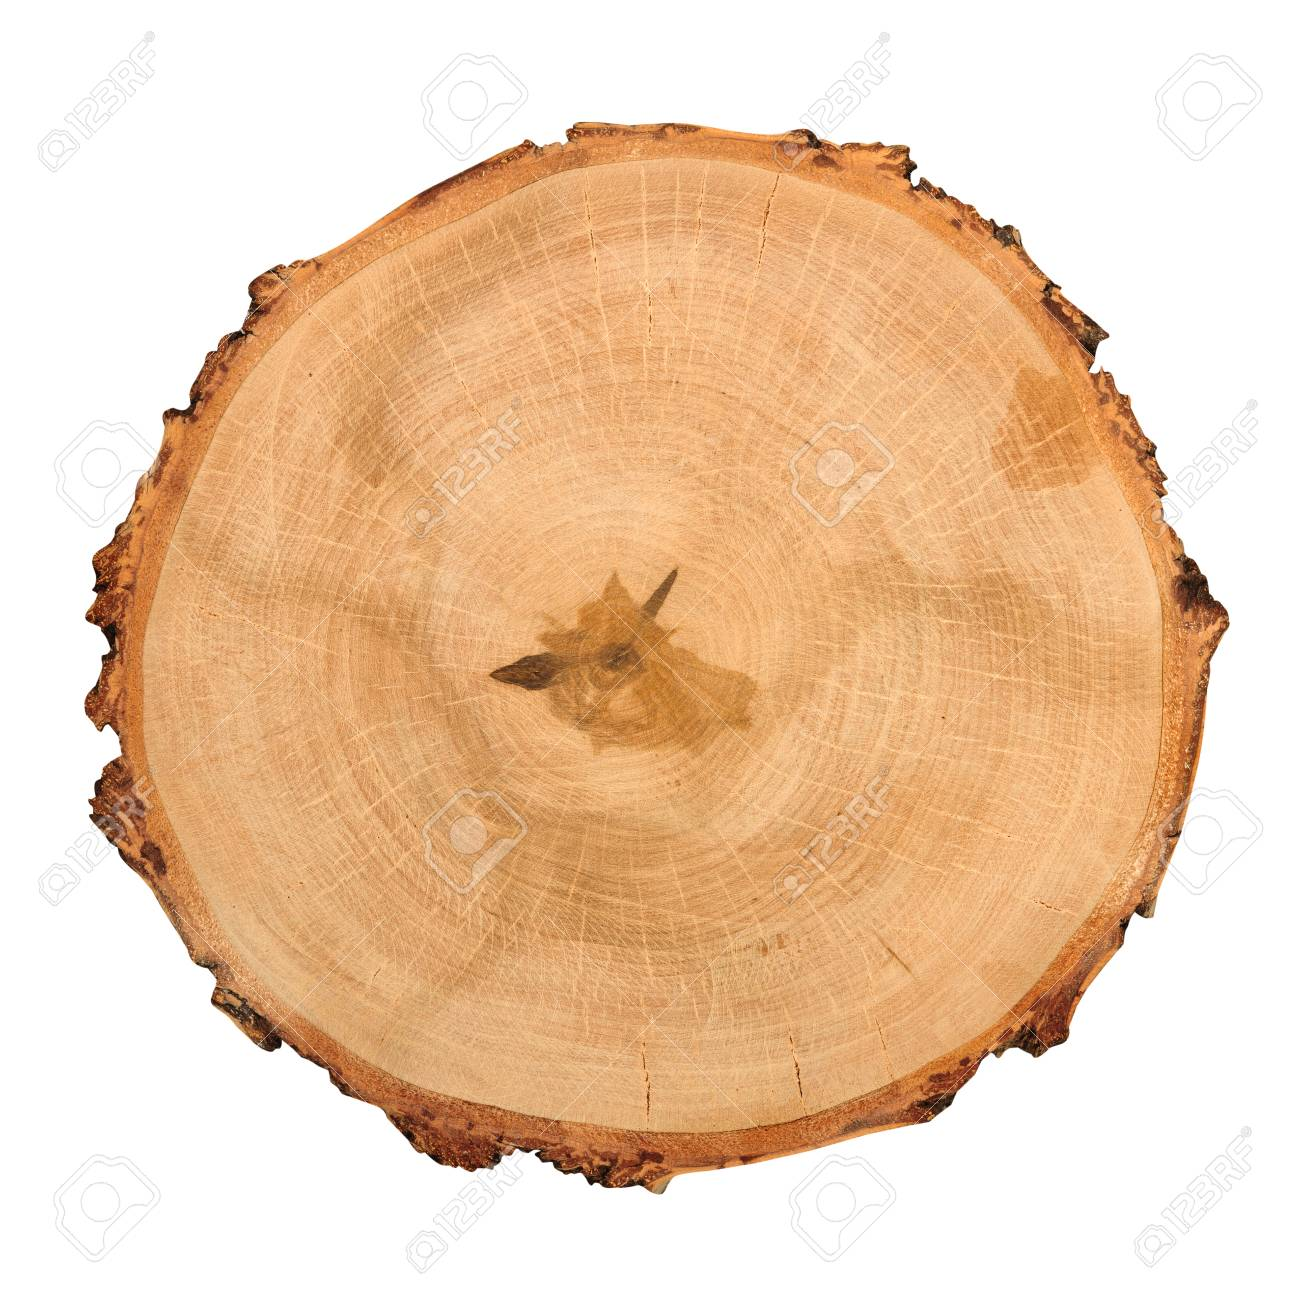 Wooden Round Cutting Board Isolated On White Background Above Stock Photo Picture And Royalty Free Image Image 72103279